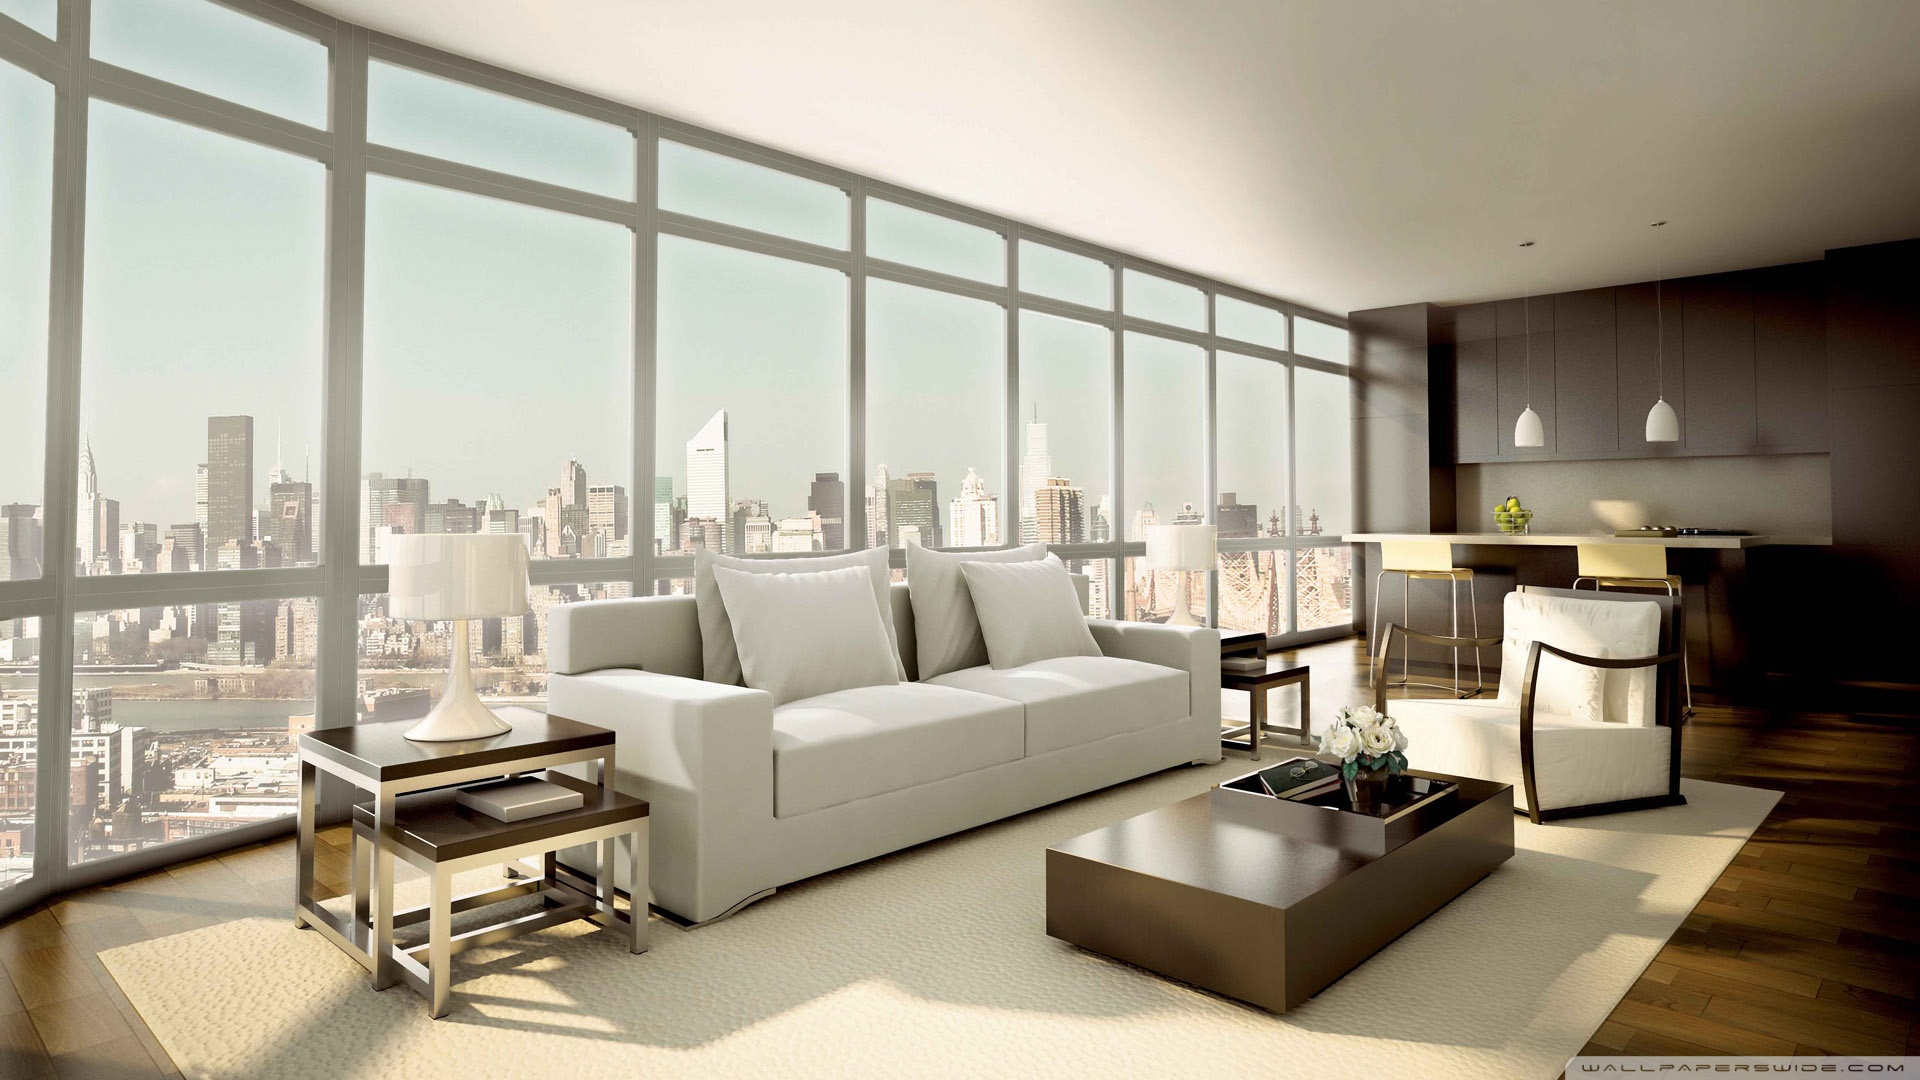 Luminous 3 Bedroom Apartment Flaunting Modern Style